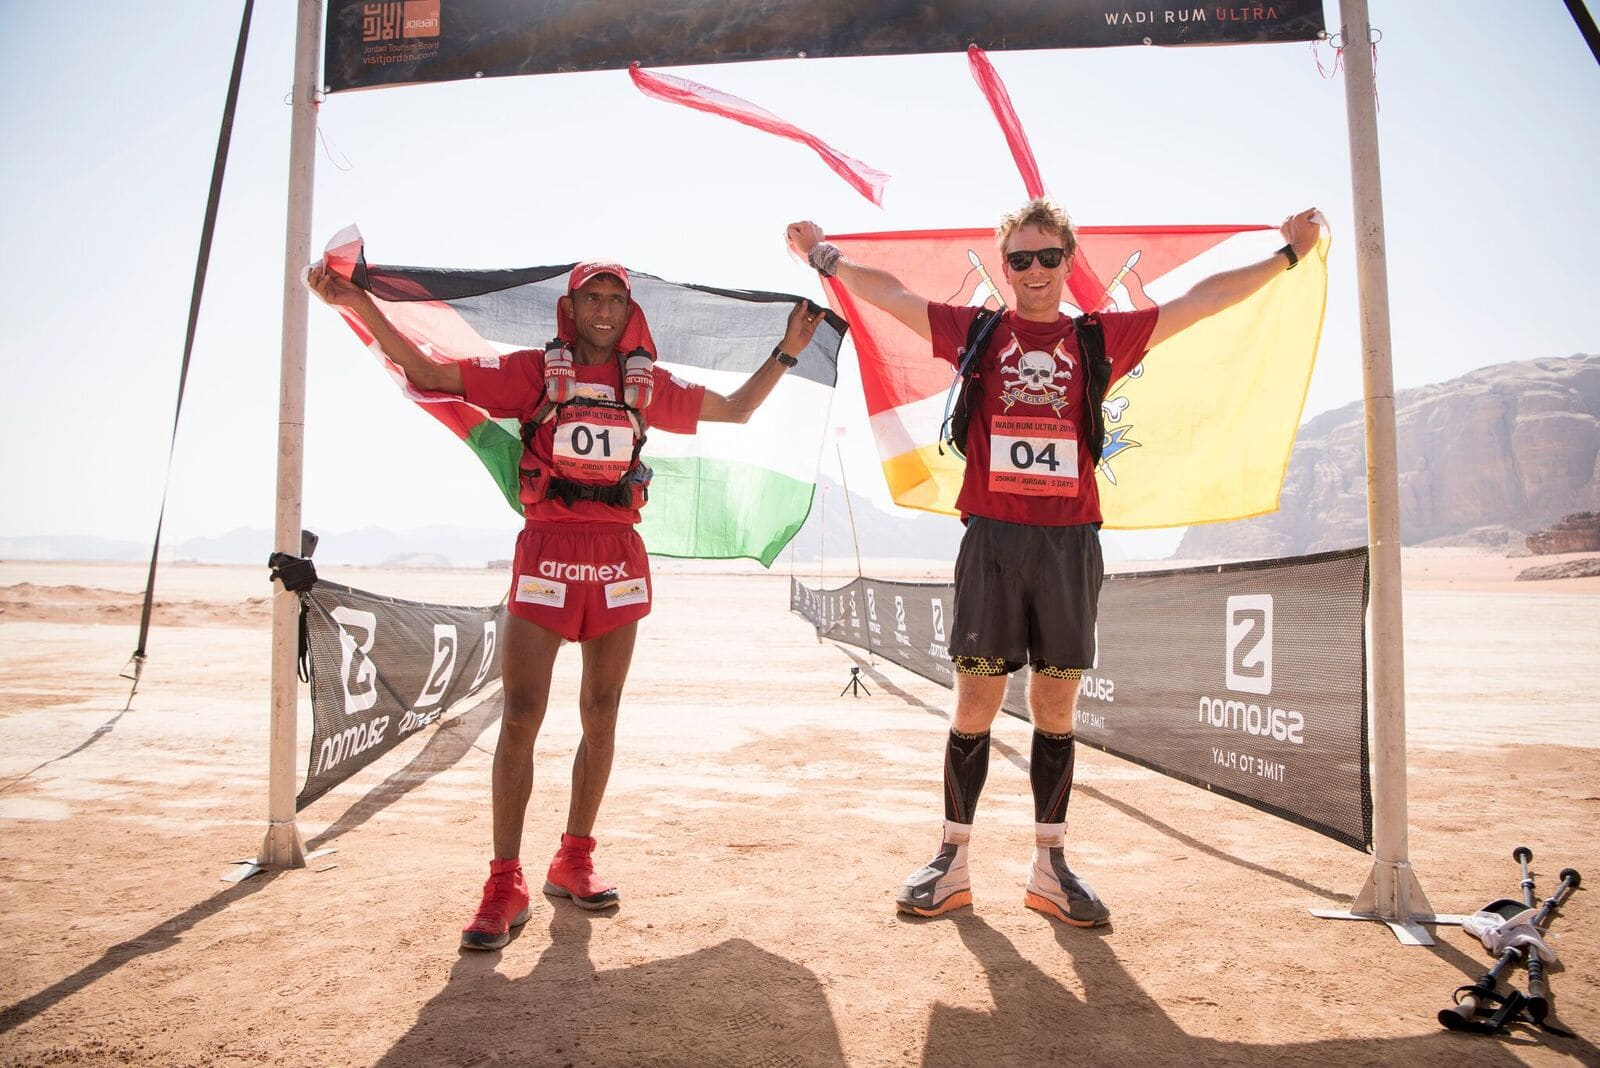 Army officer shares how to succeed in the desert Ultra X